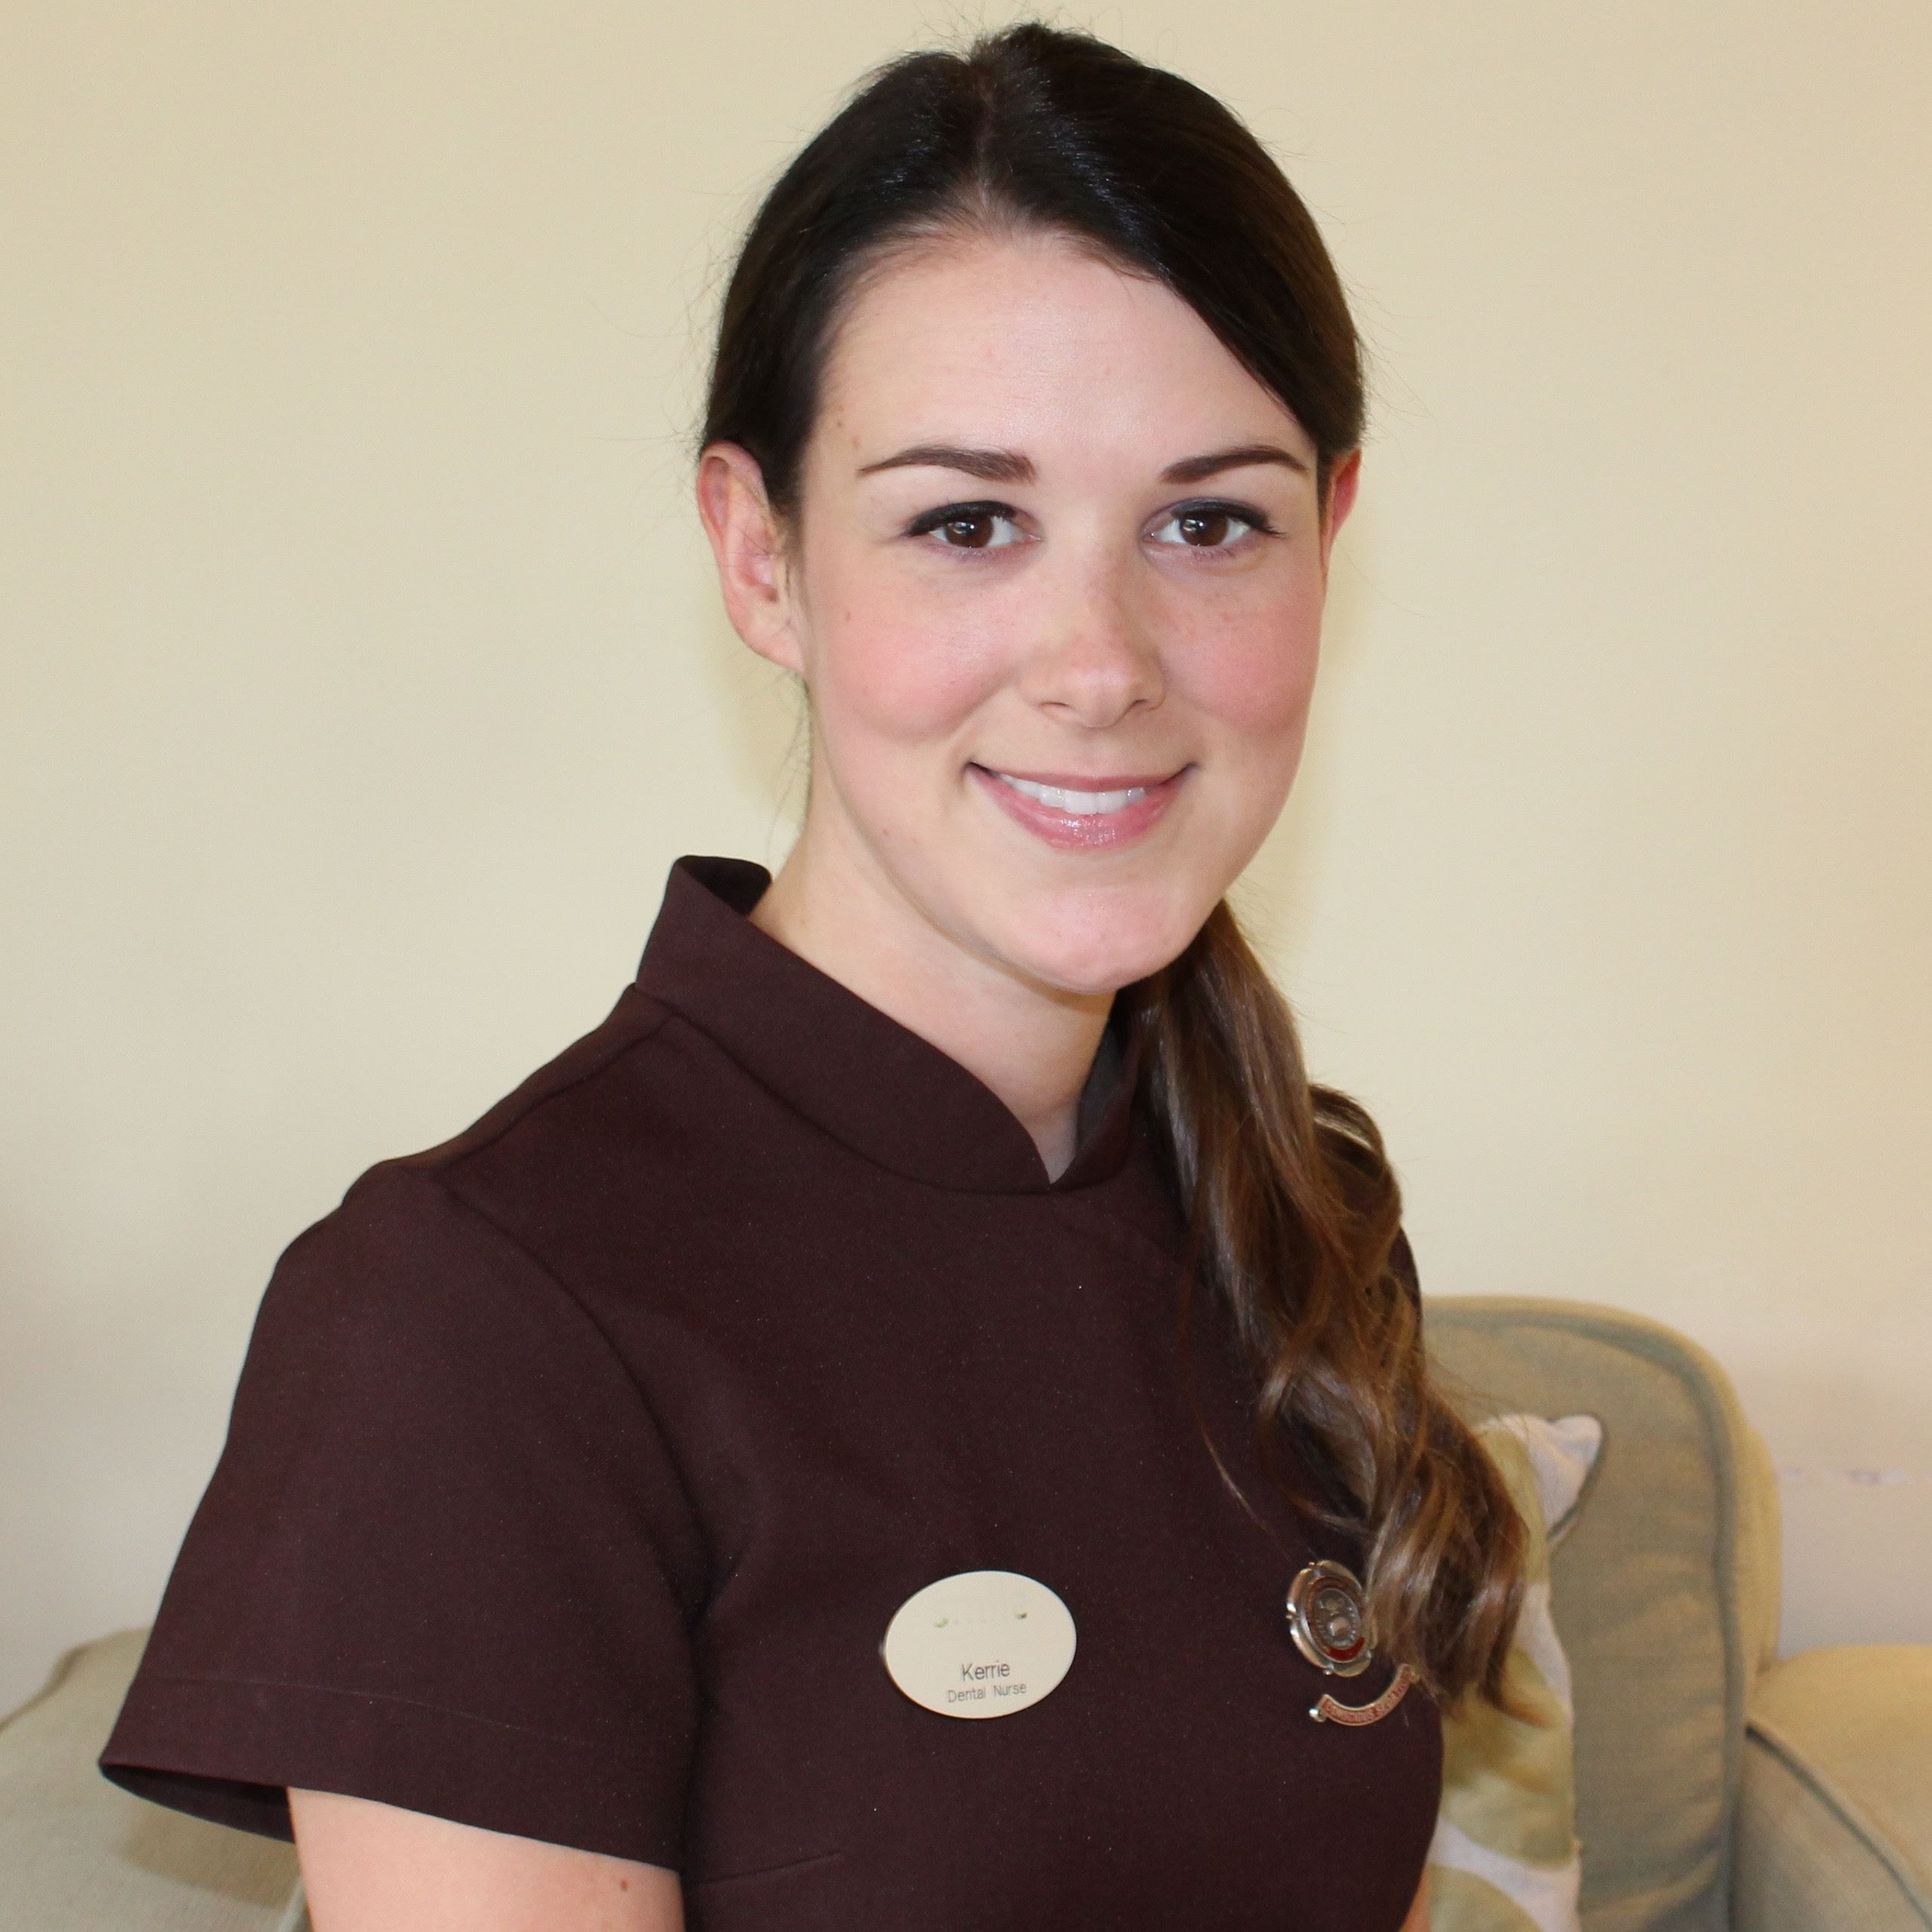 Kerrie - Dental Nurse